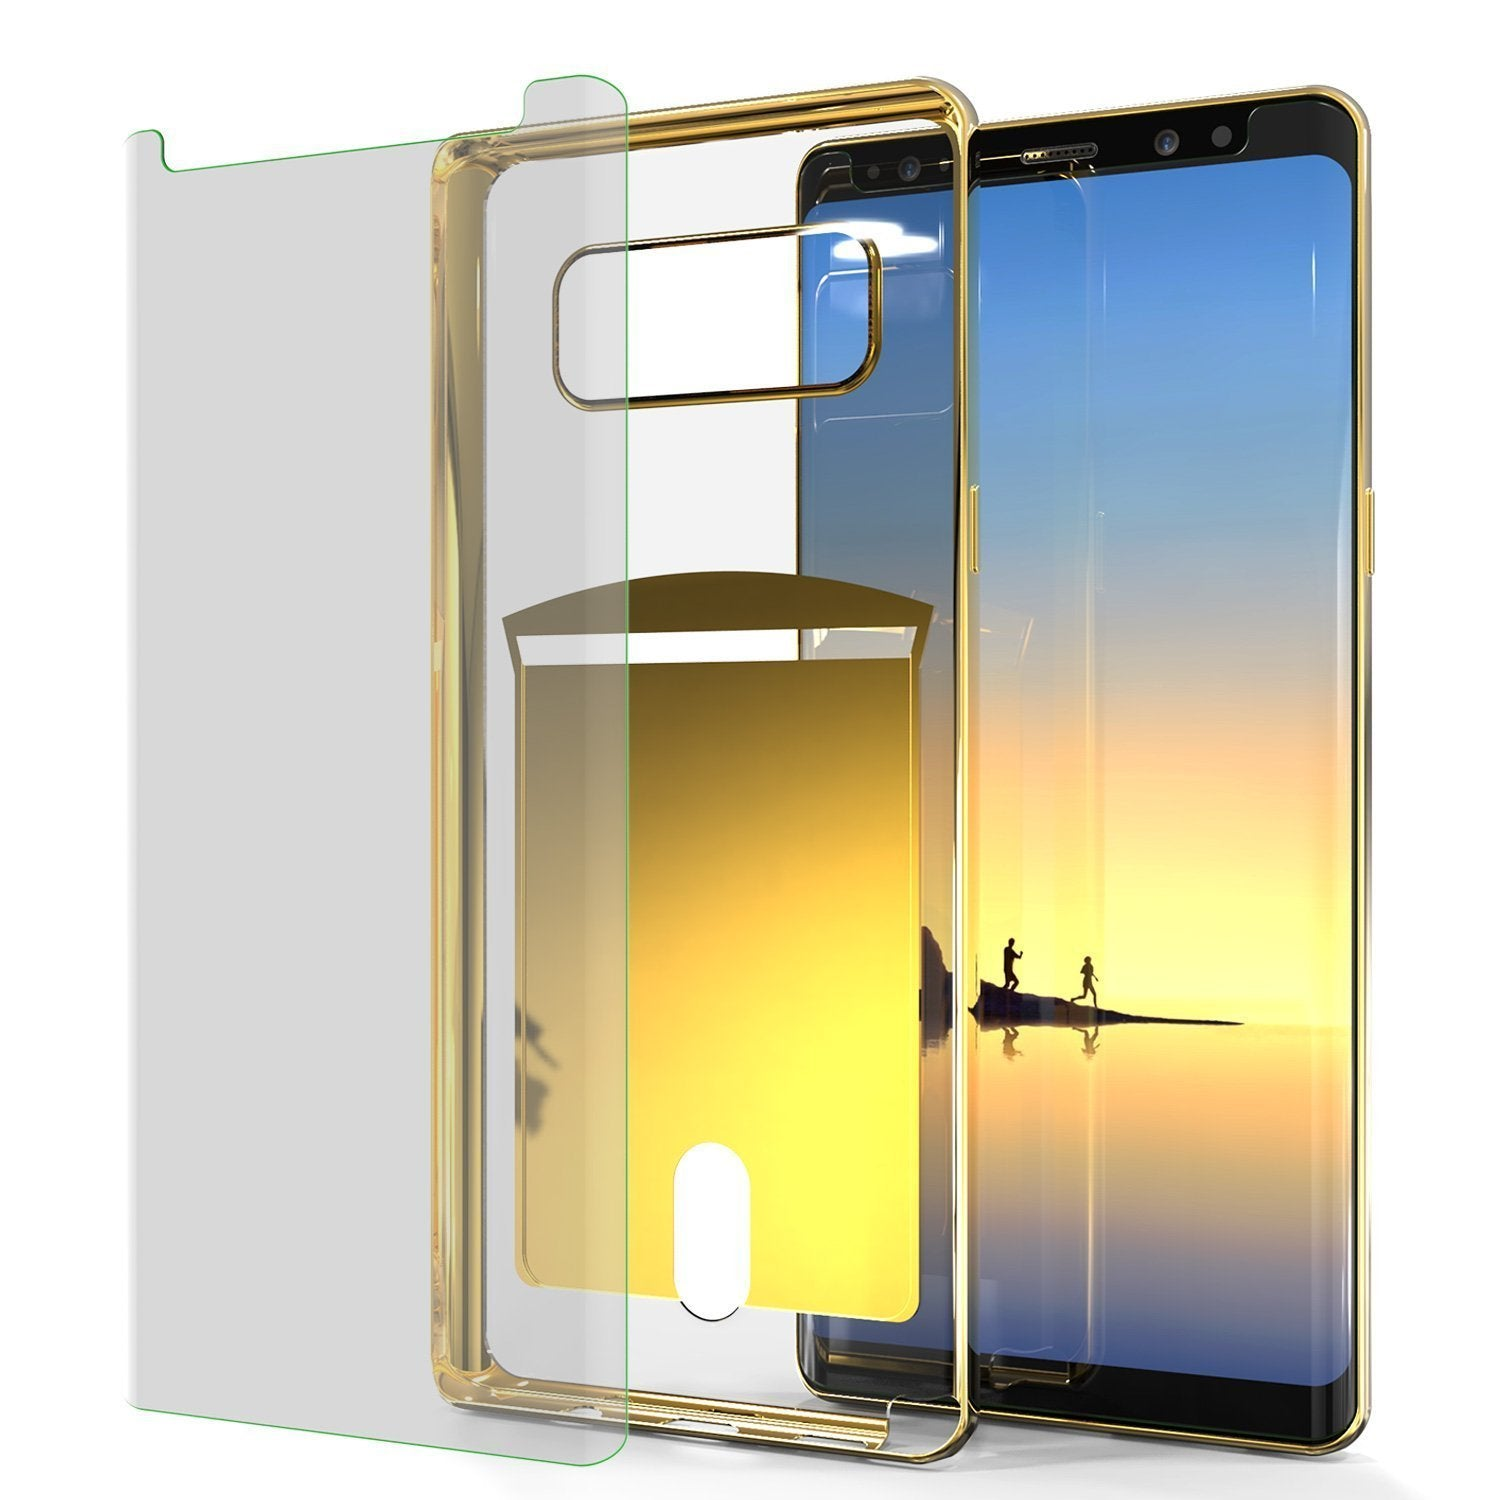 Galaxy Note 8 Case, PUNKCASE® LUCID Gold Series | Card Slot | SHIELD Screen Protector | Ultra fit - PunkCase NZ